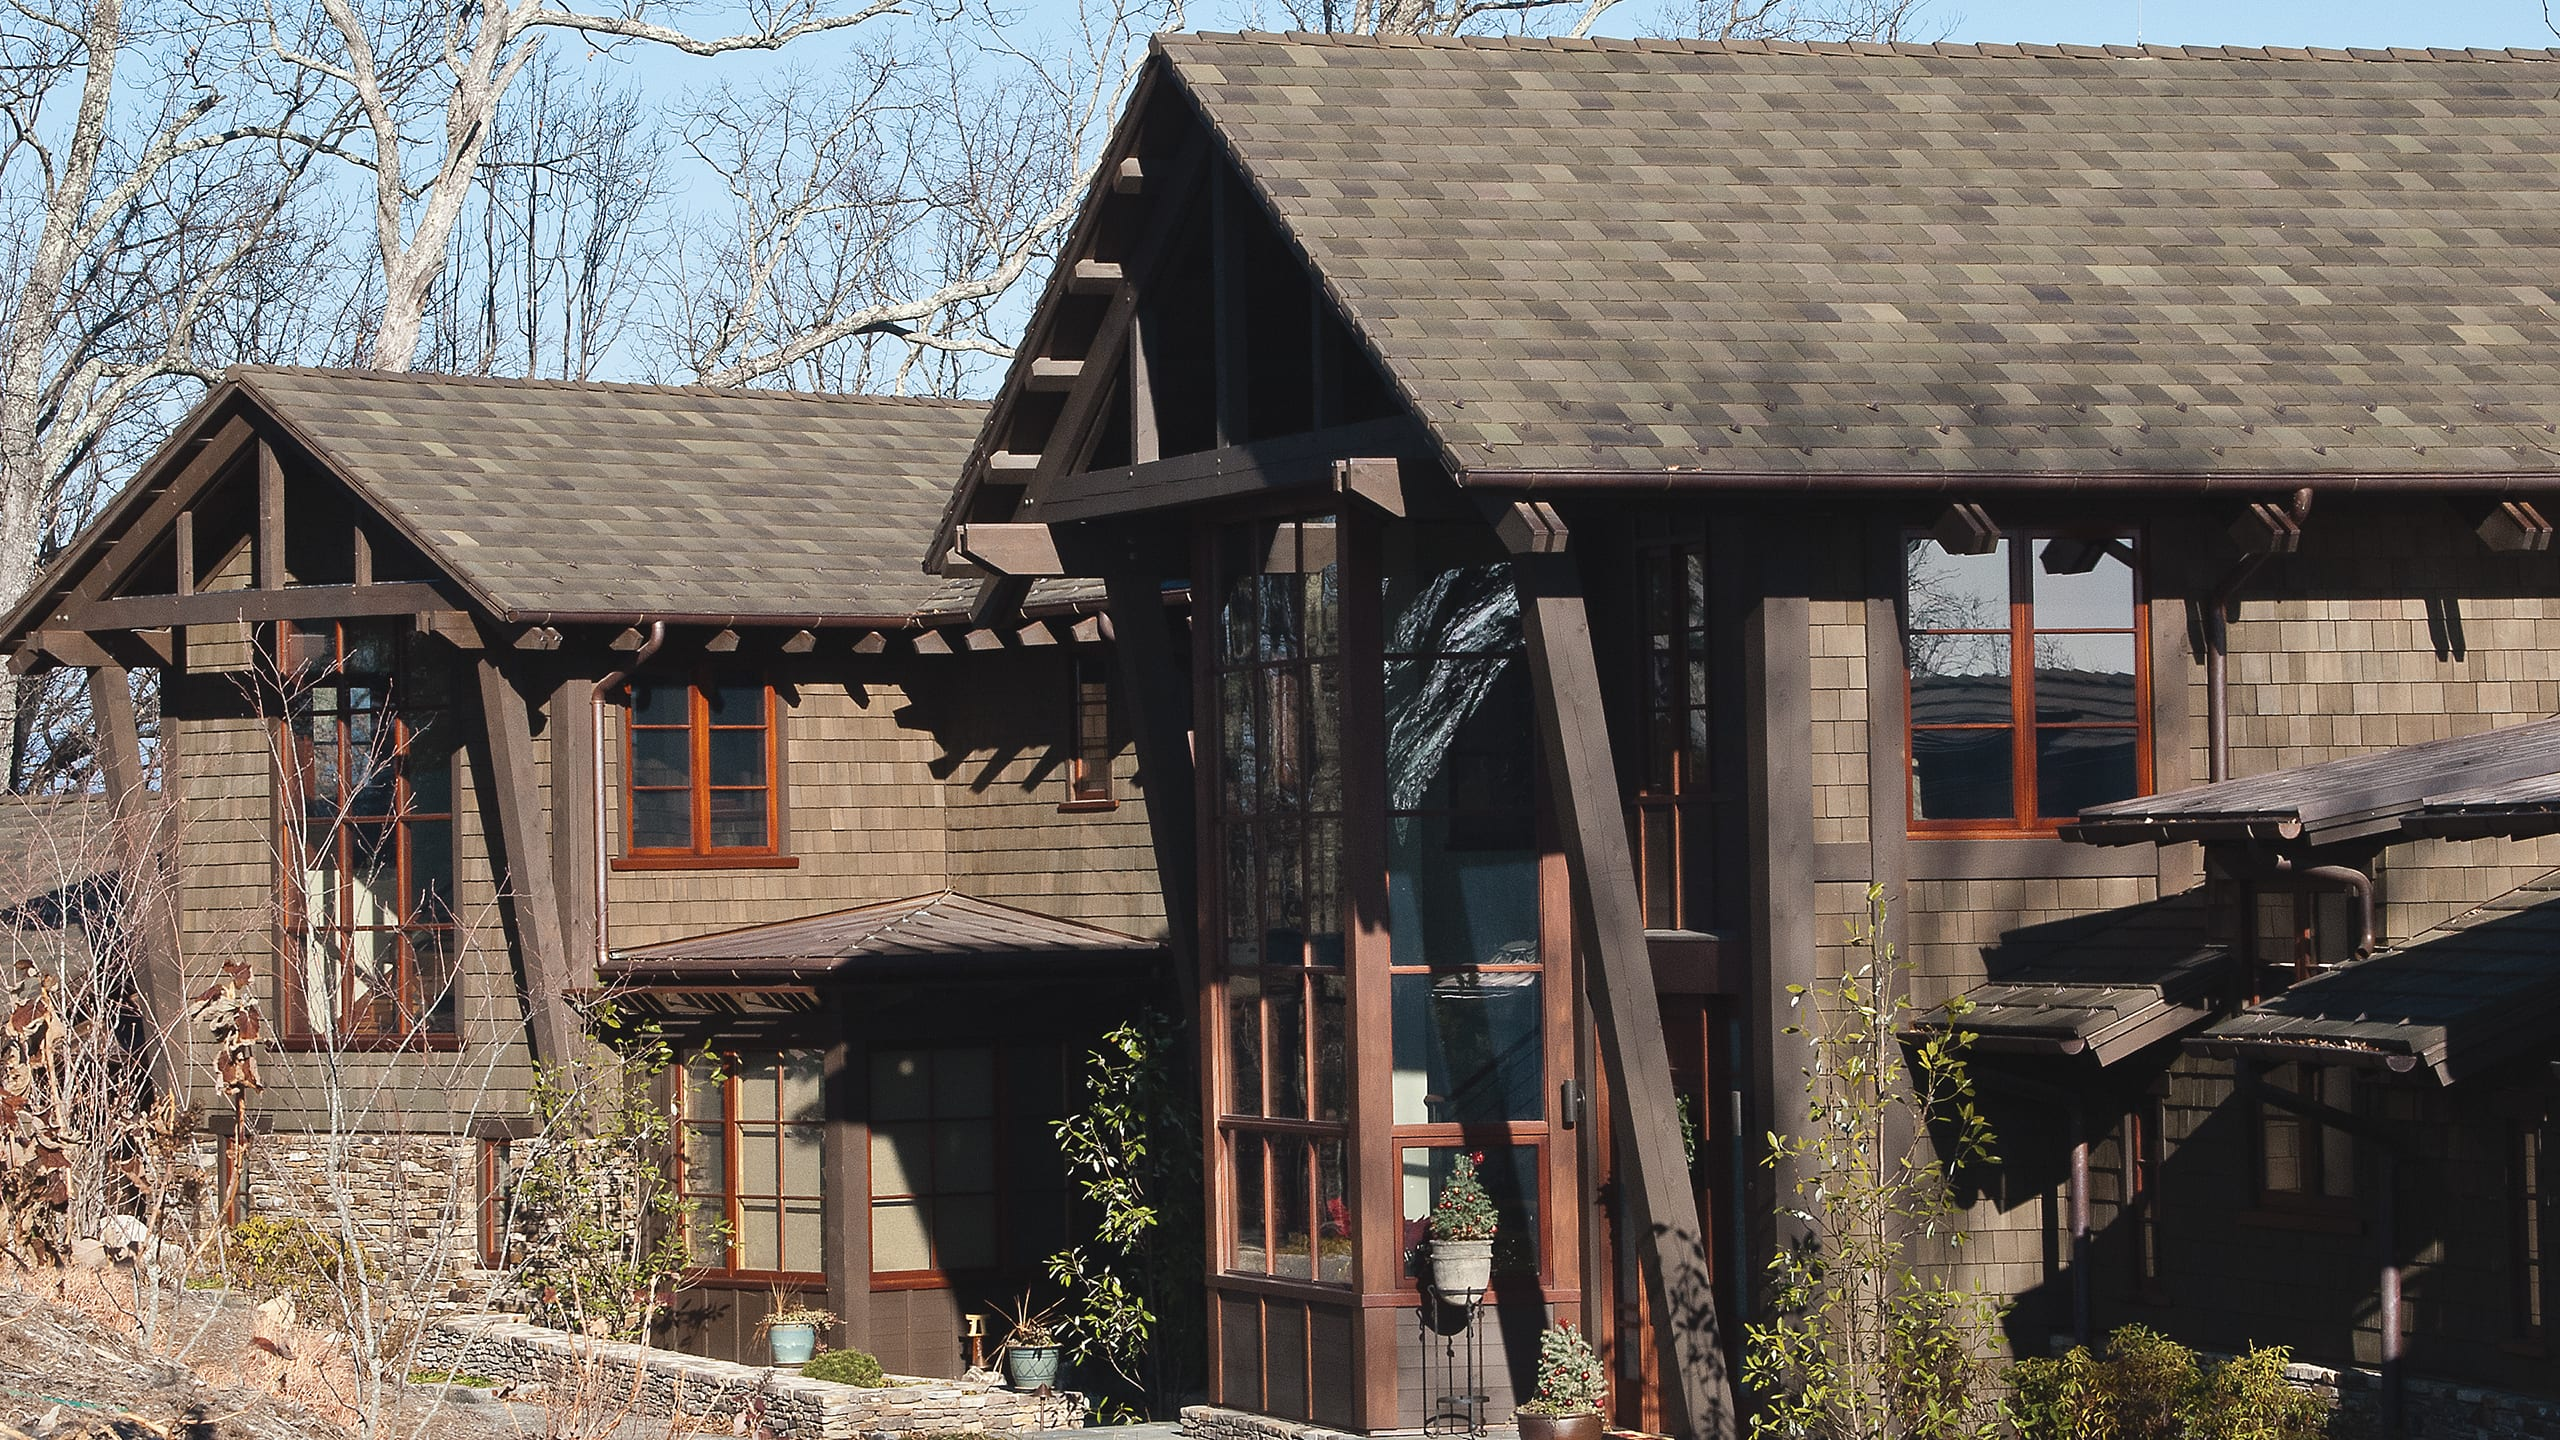 Private Residence - Asheville Ludowici Roof Tile